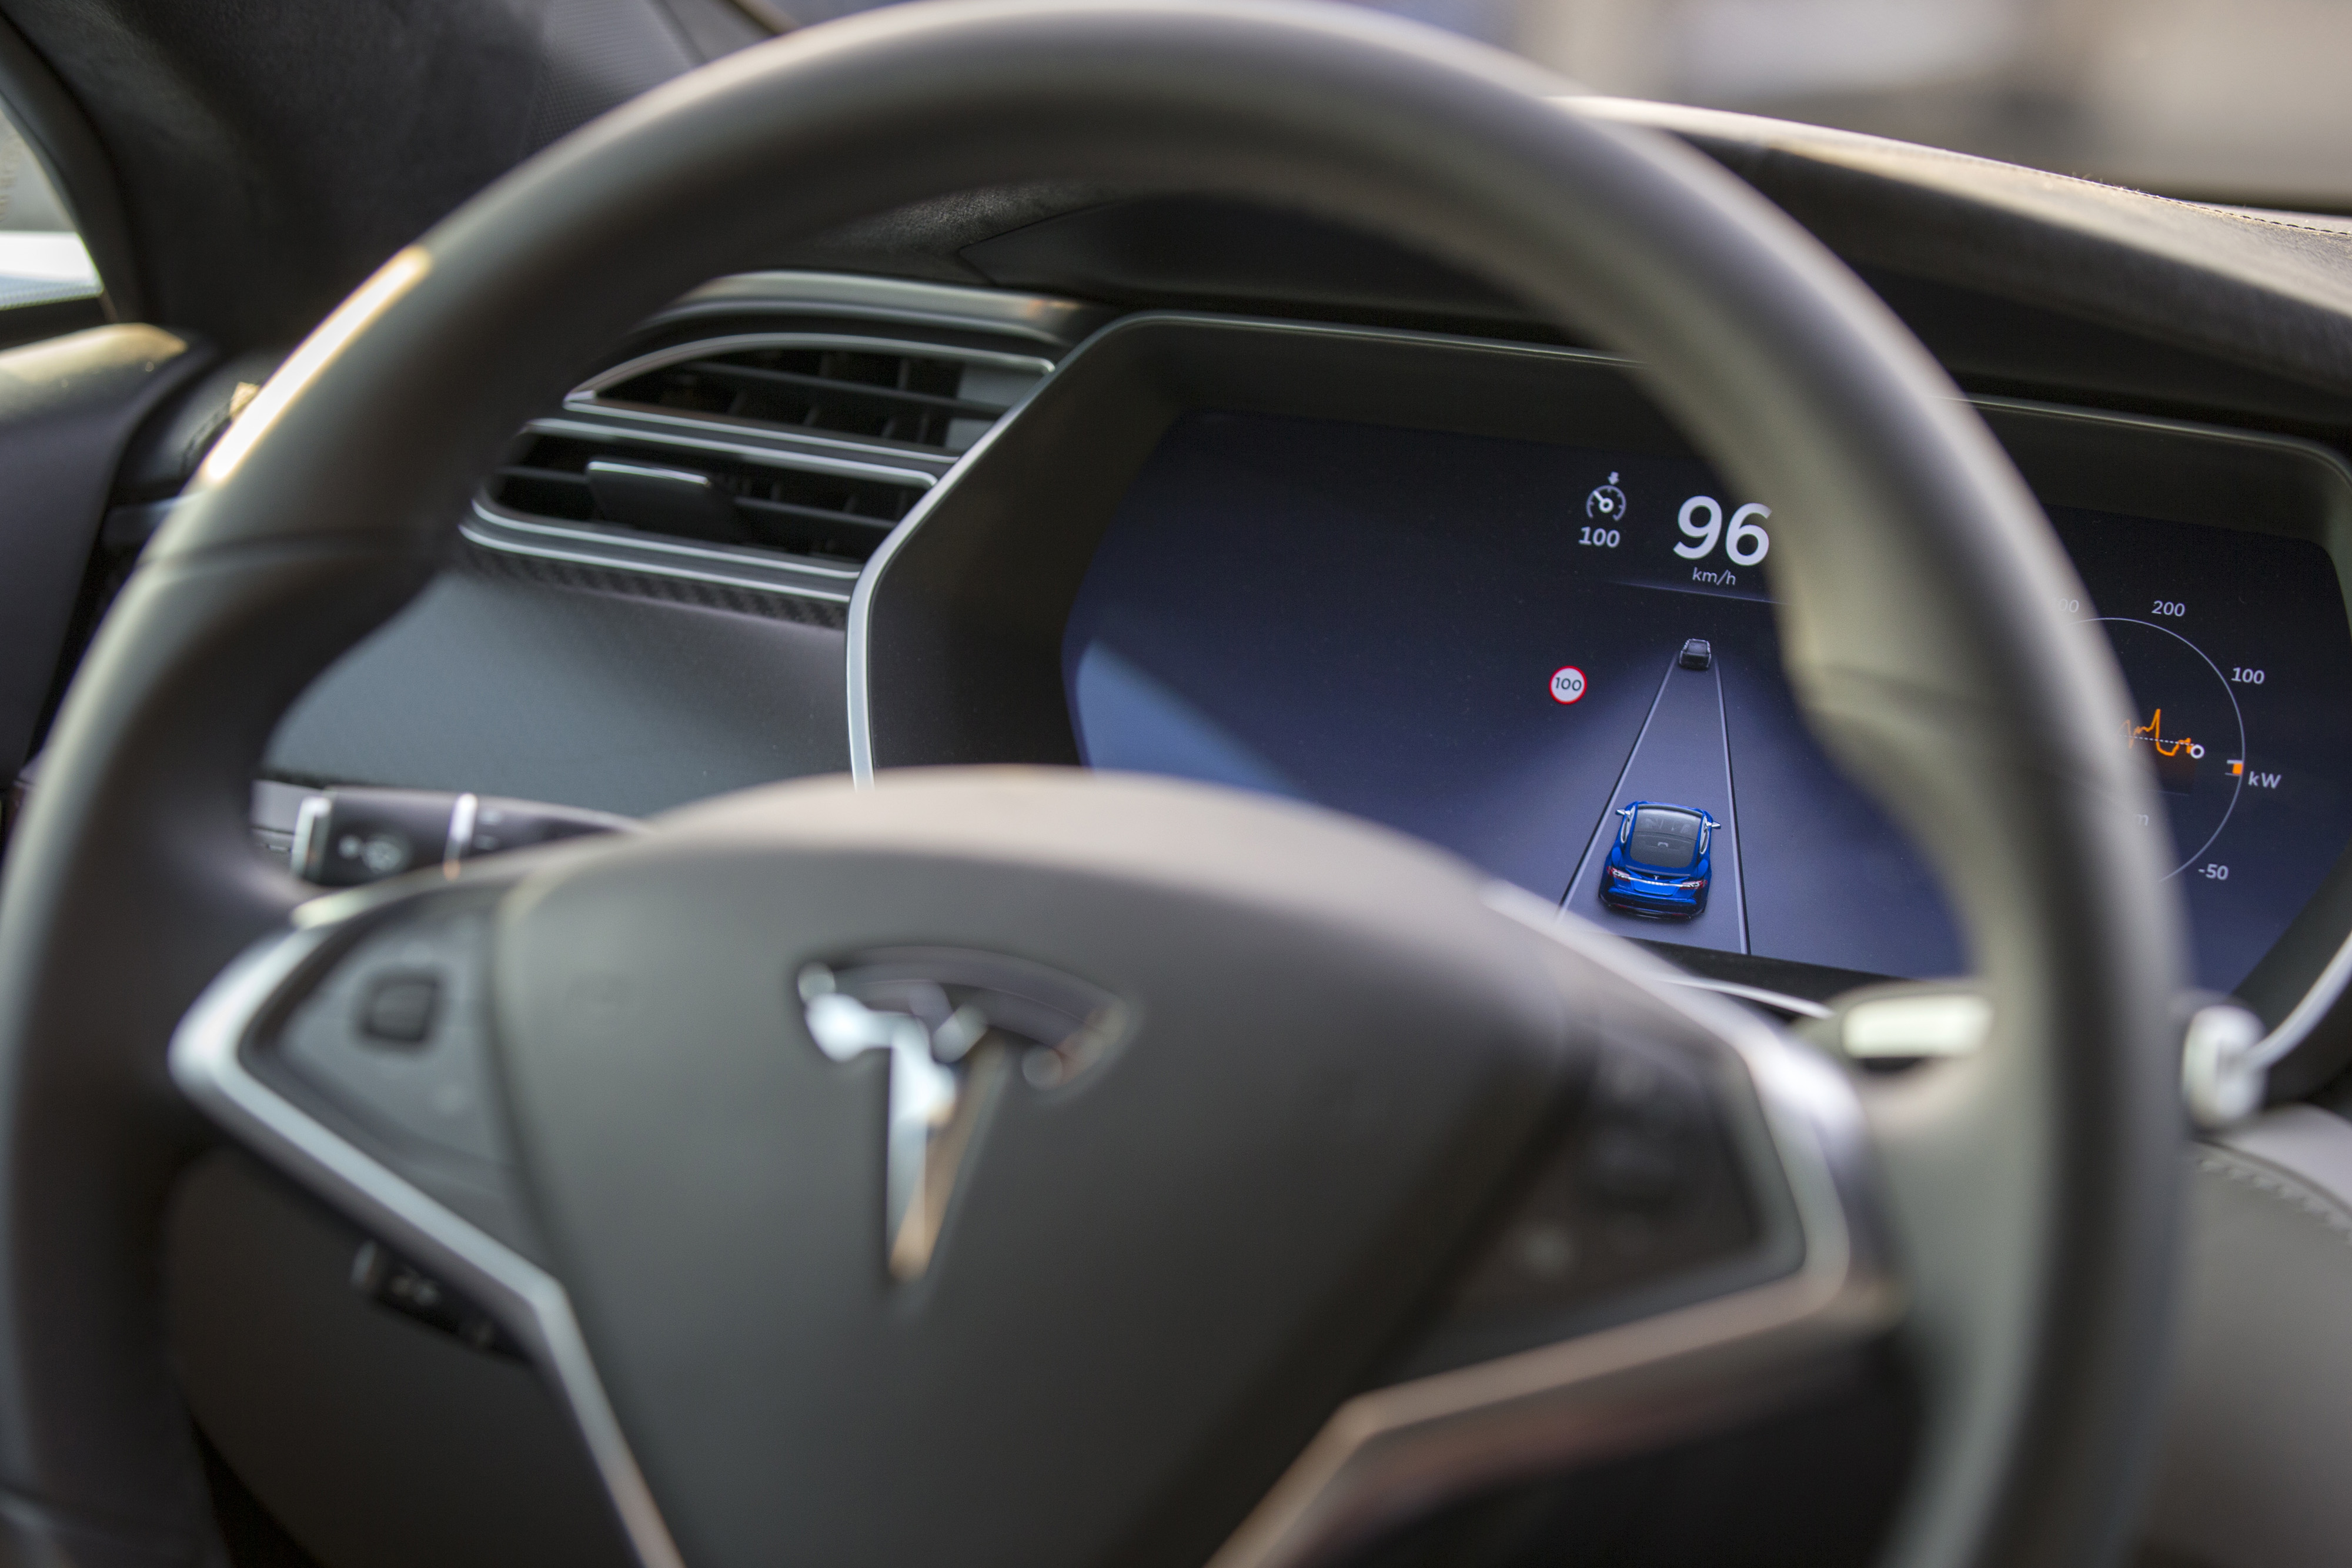 An employee drives a Tesla Motors Inc. Model S electric automobile, equipped with Autopilot hardware and software, hands-free.